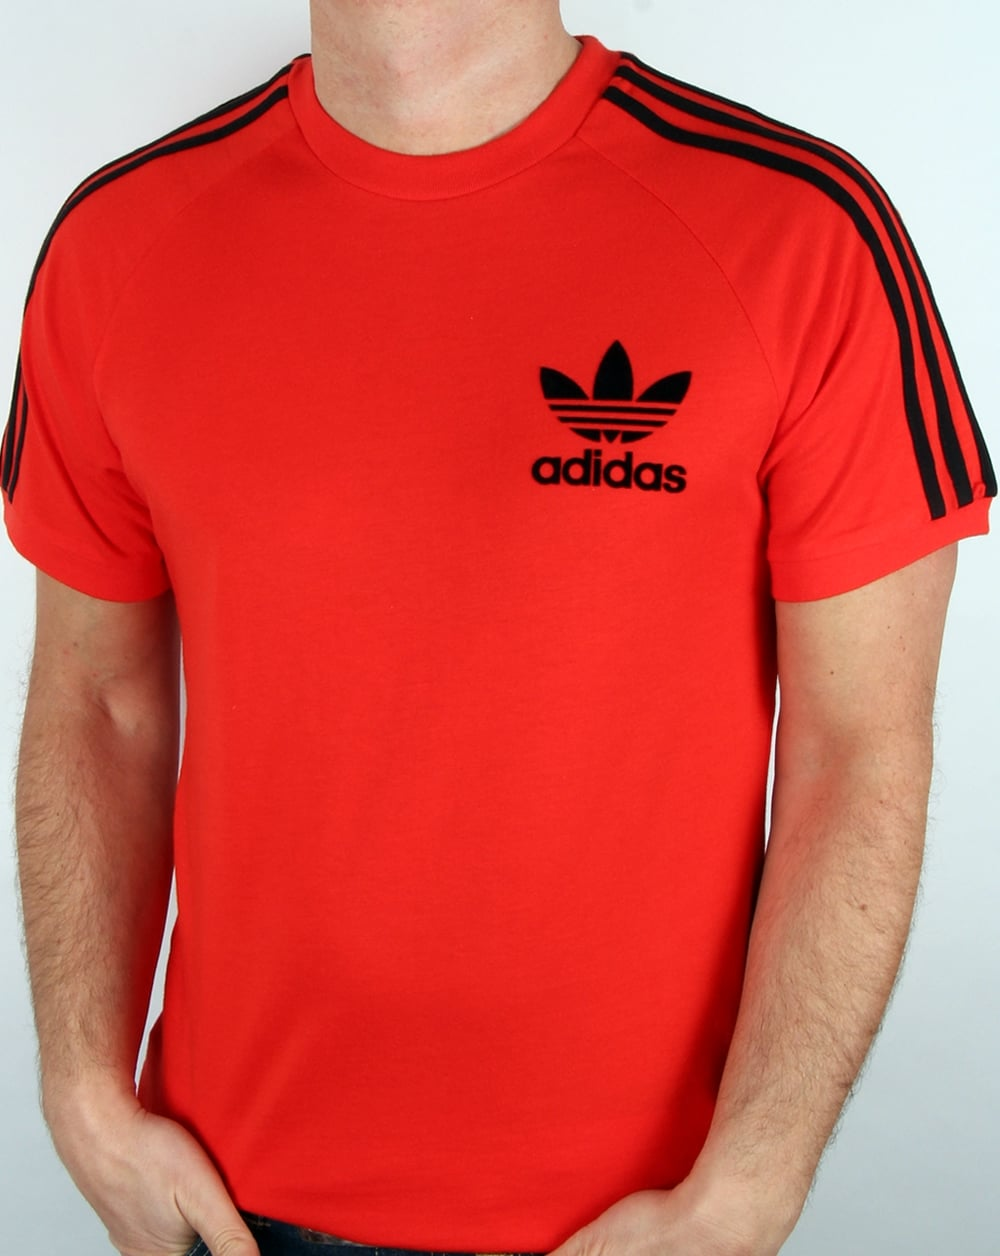 adidas originals retro 3 stripes t shirt orange california. Black Bedroom Furniture Sets. Home Design Ideas